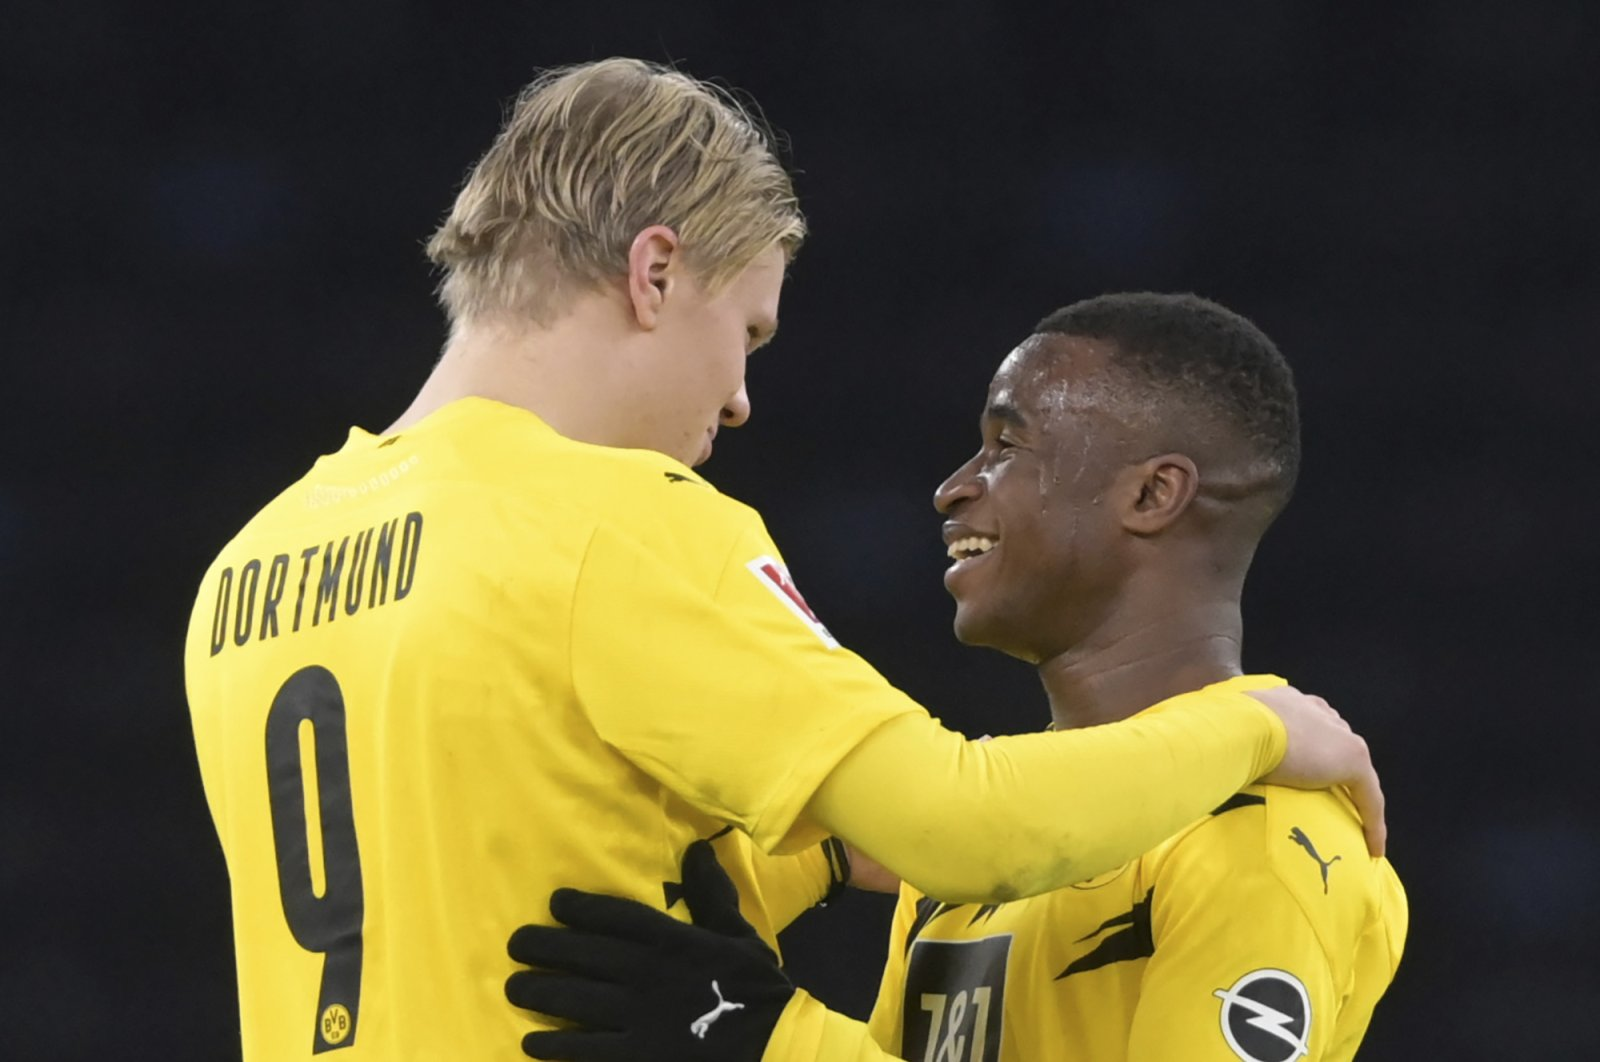 Dortmund's Erling Haaland (L) and Youssoufa Moukoko (R) hug each other after the match, in Berlin, Germany, Nov. 21, 2020. (AP Photo)